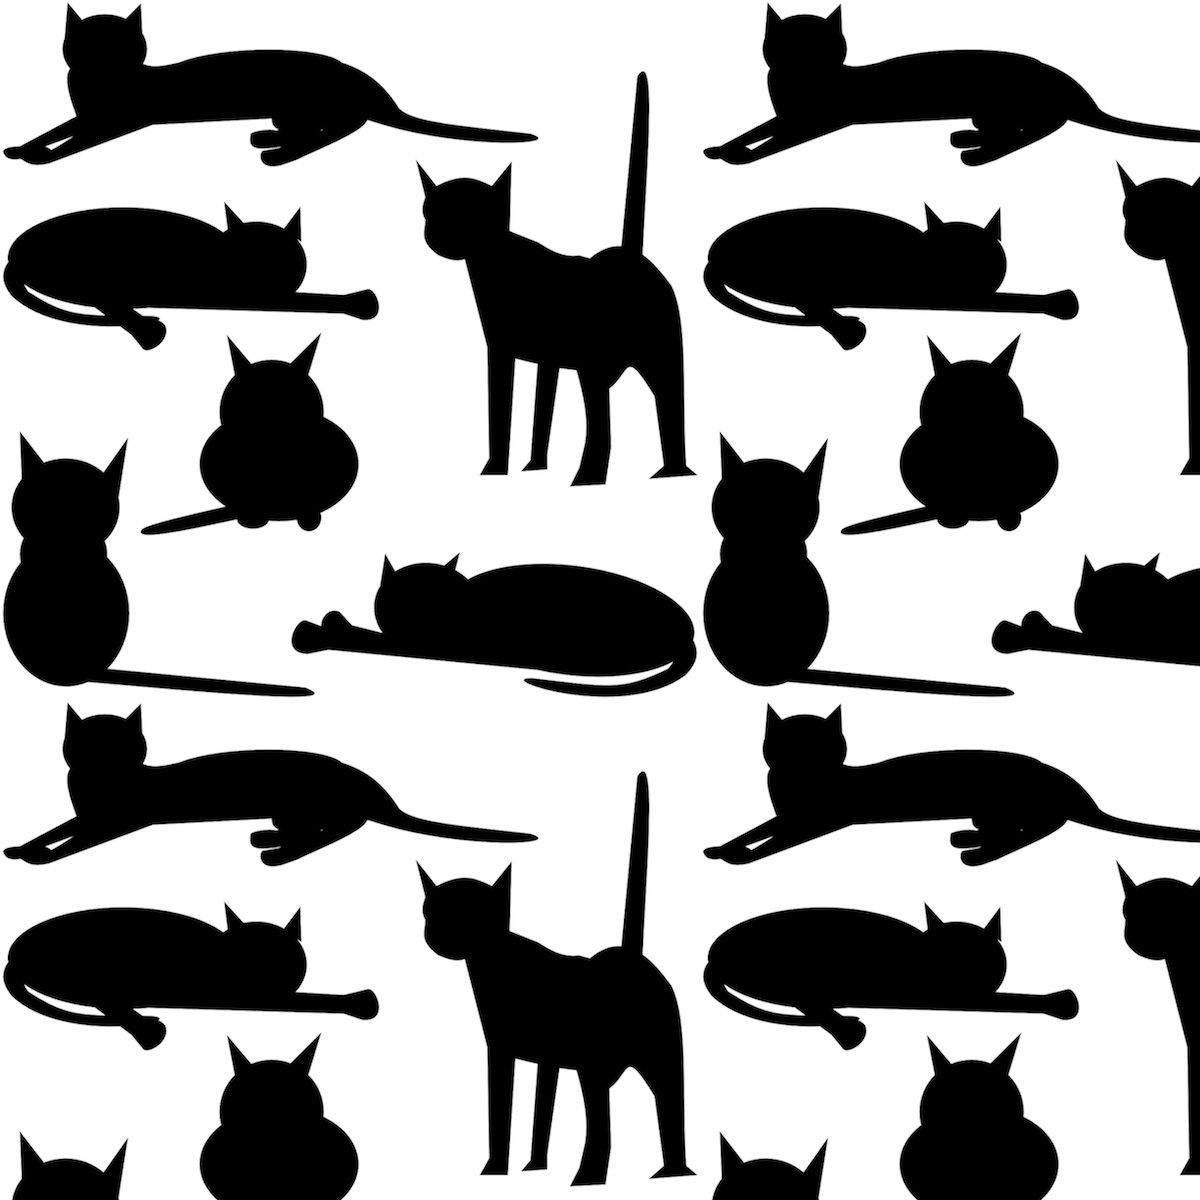 Free Cat Images: Free Digital Cat Pattern - Black And White Colored - Free Printable Cat Silhouette